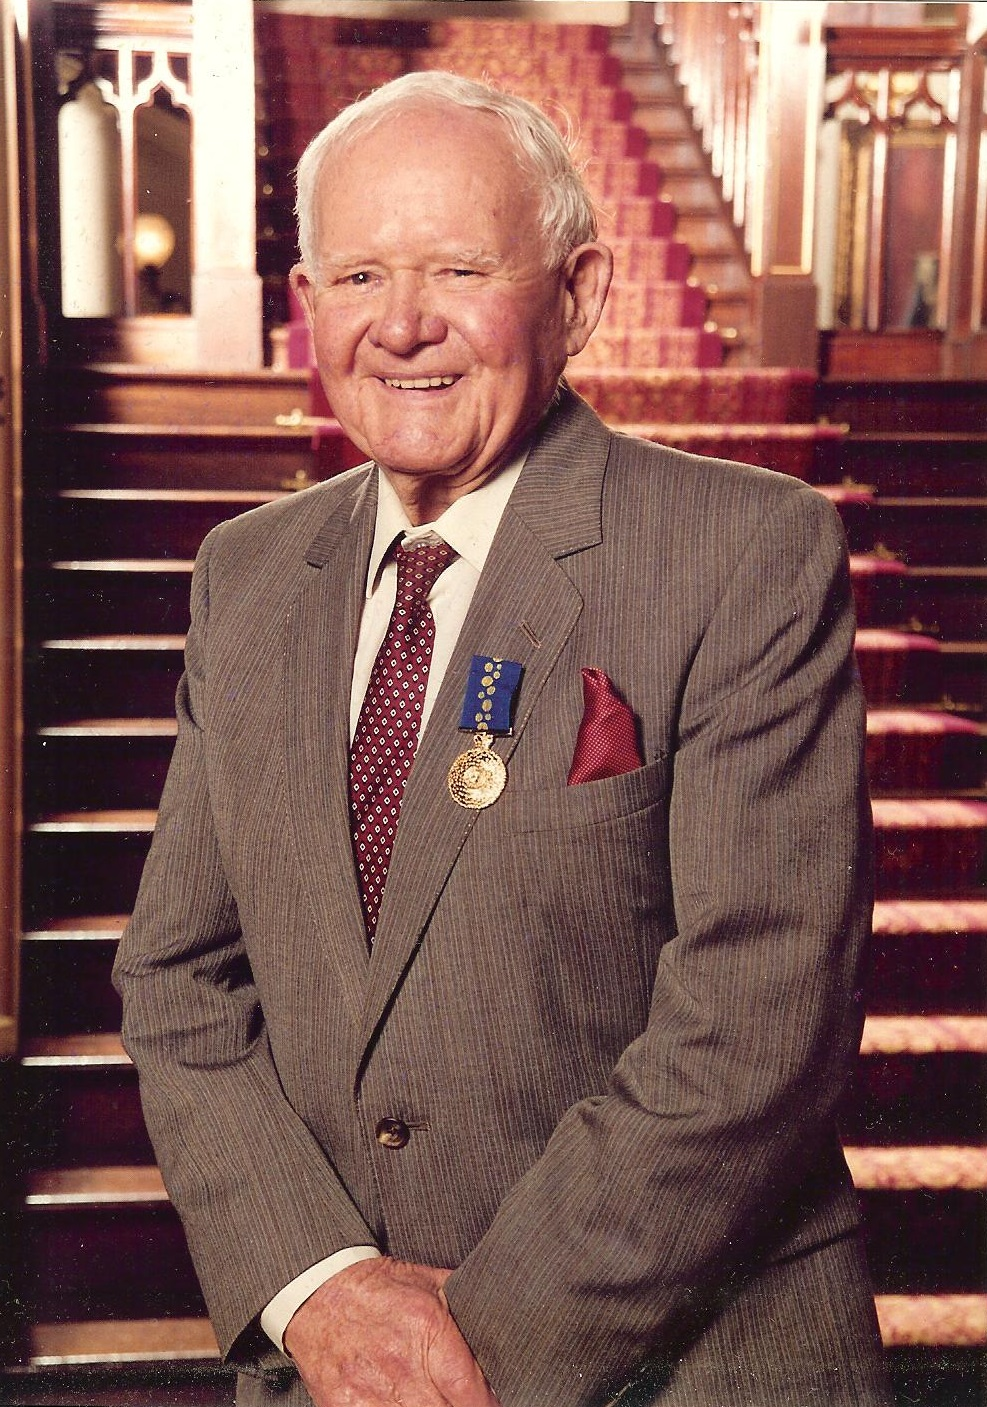 Harold Halvorsen awarded an OAM in October 2000. Age 90. This prestigious honour was awarded to him for his outstanding boat building contribution to the WWII war effort in which 247 craft were built and delivered at Lars Halvorsen Sons Pty Ltd Ryde for the US, Dutch and Australian Navy's from 1939 through to 1945 under his leadership.